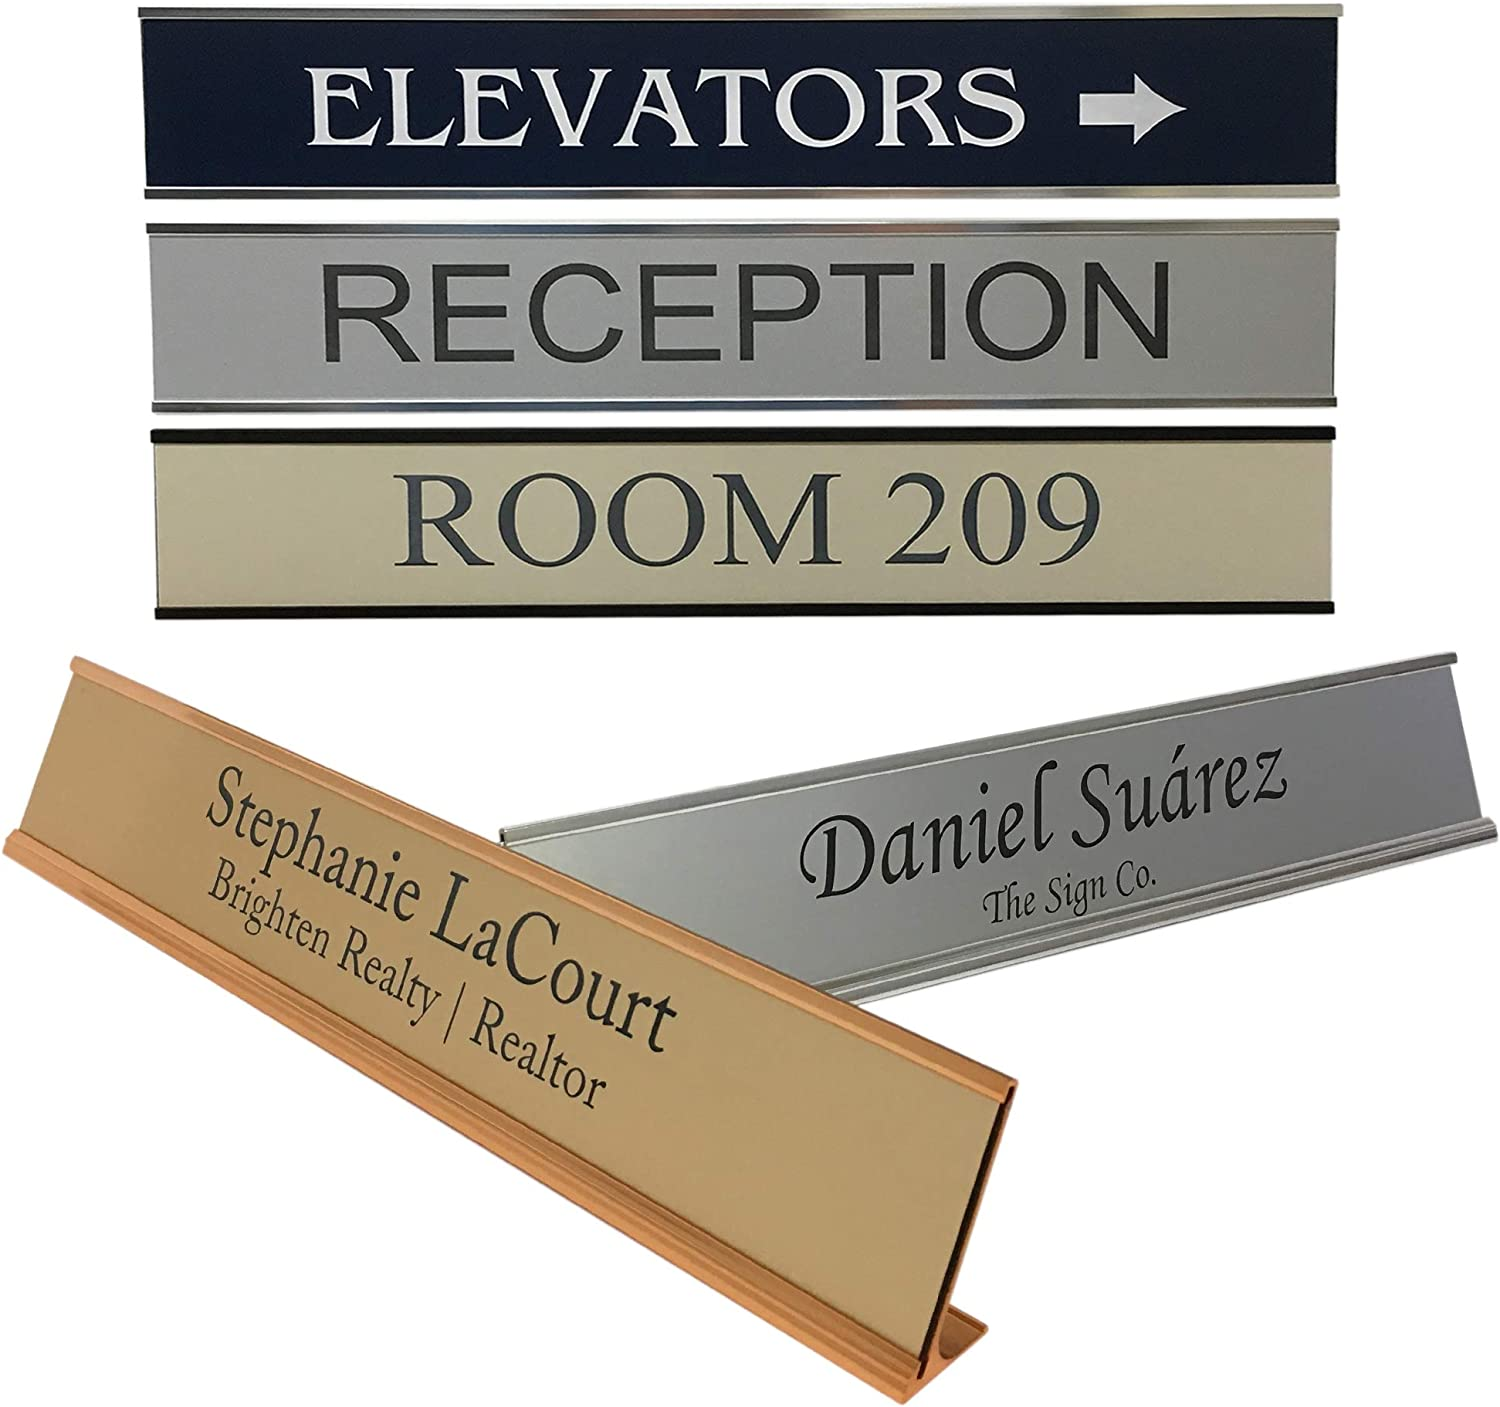 Personalized Office Name Plate Sign with Aluminum Wall or Desk Holder - 2x12 - Customize